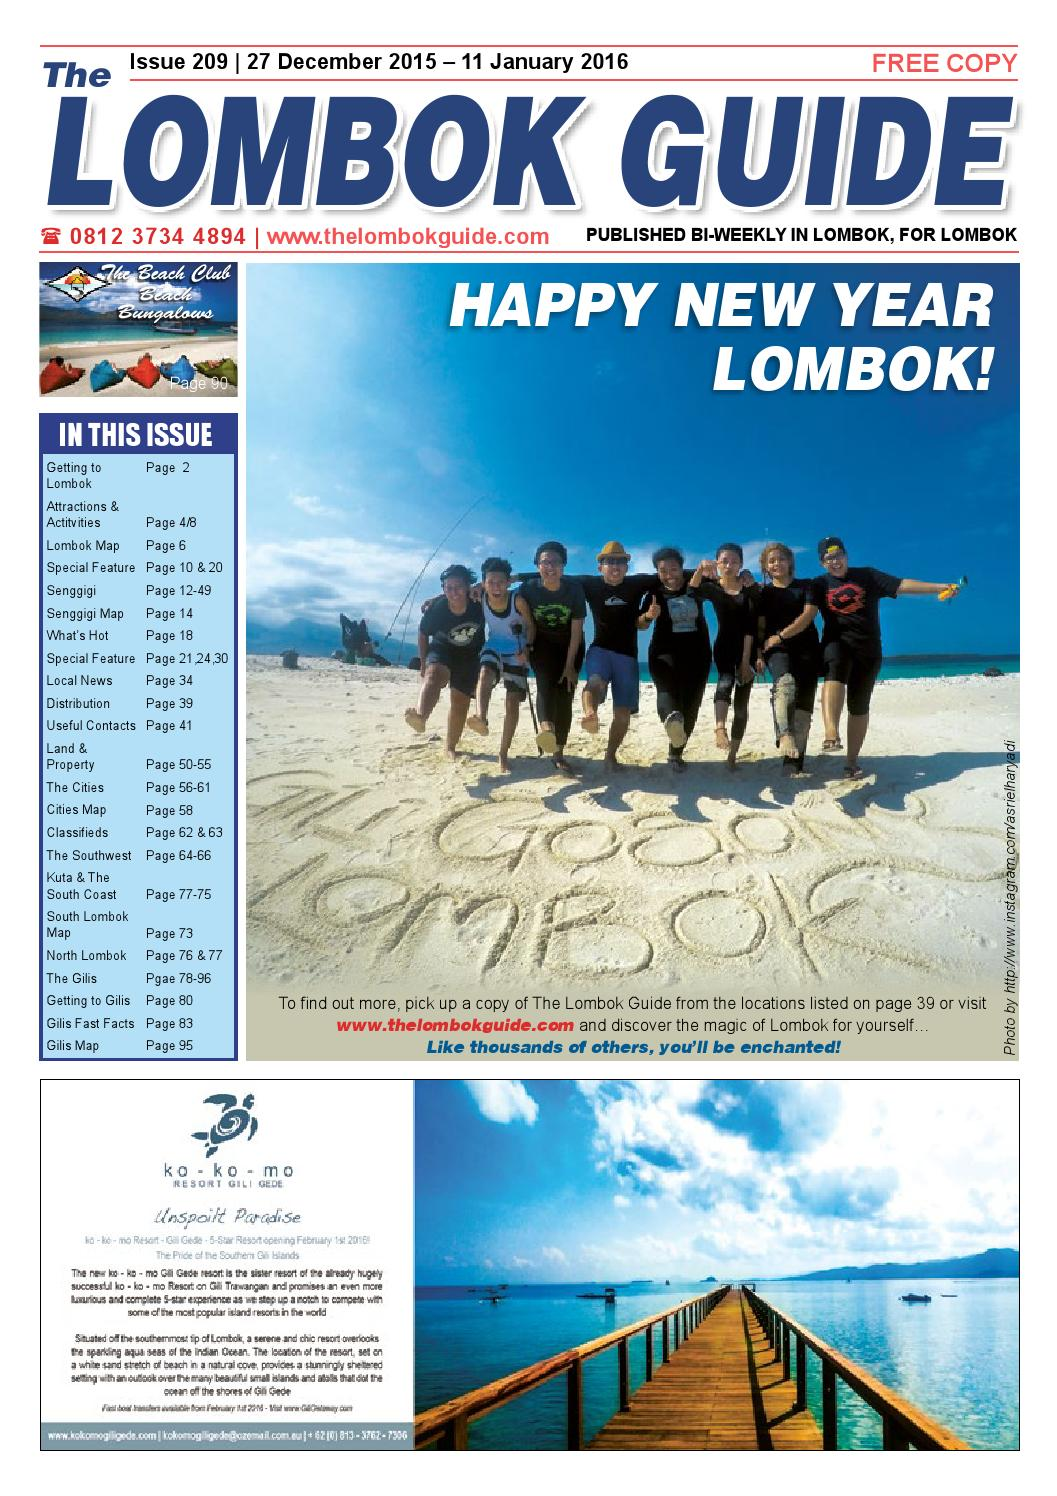 The Lombok Guide Issue 209 By Issuu Agung Voucher Hypermart 50000 Bth